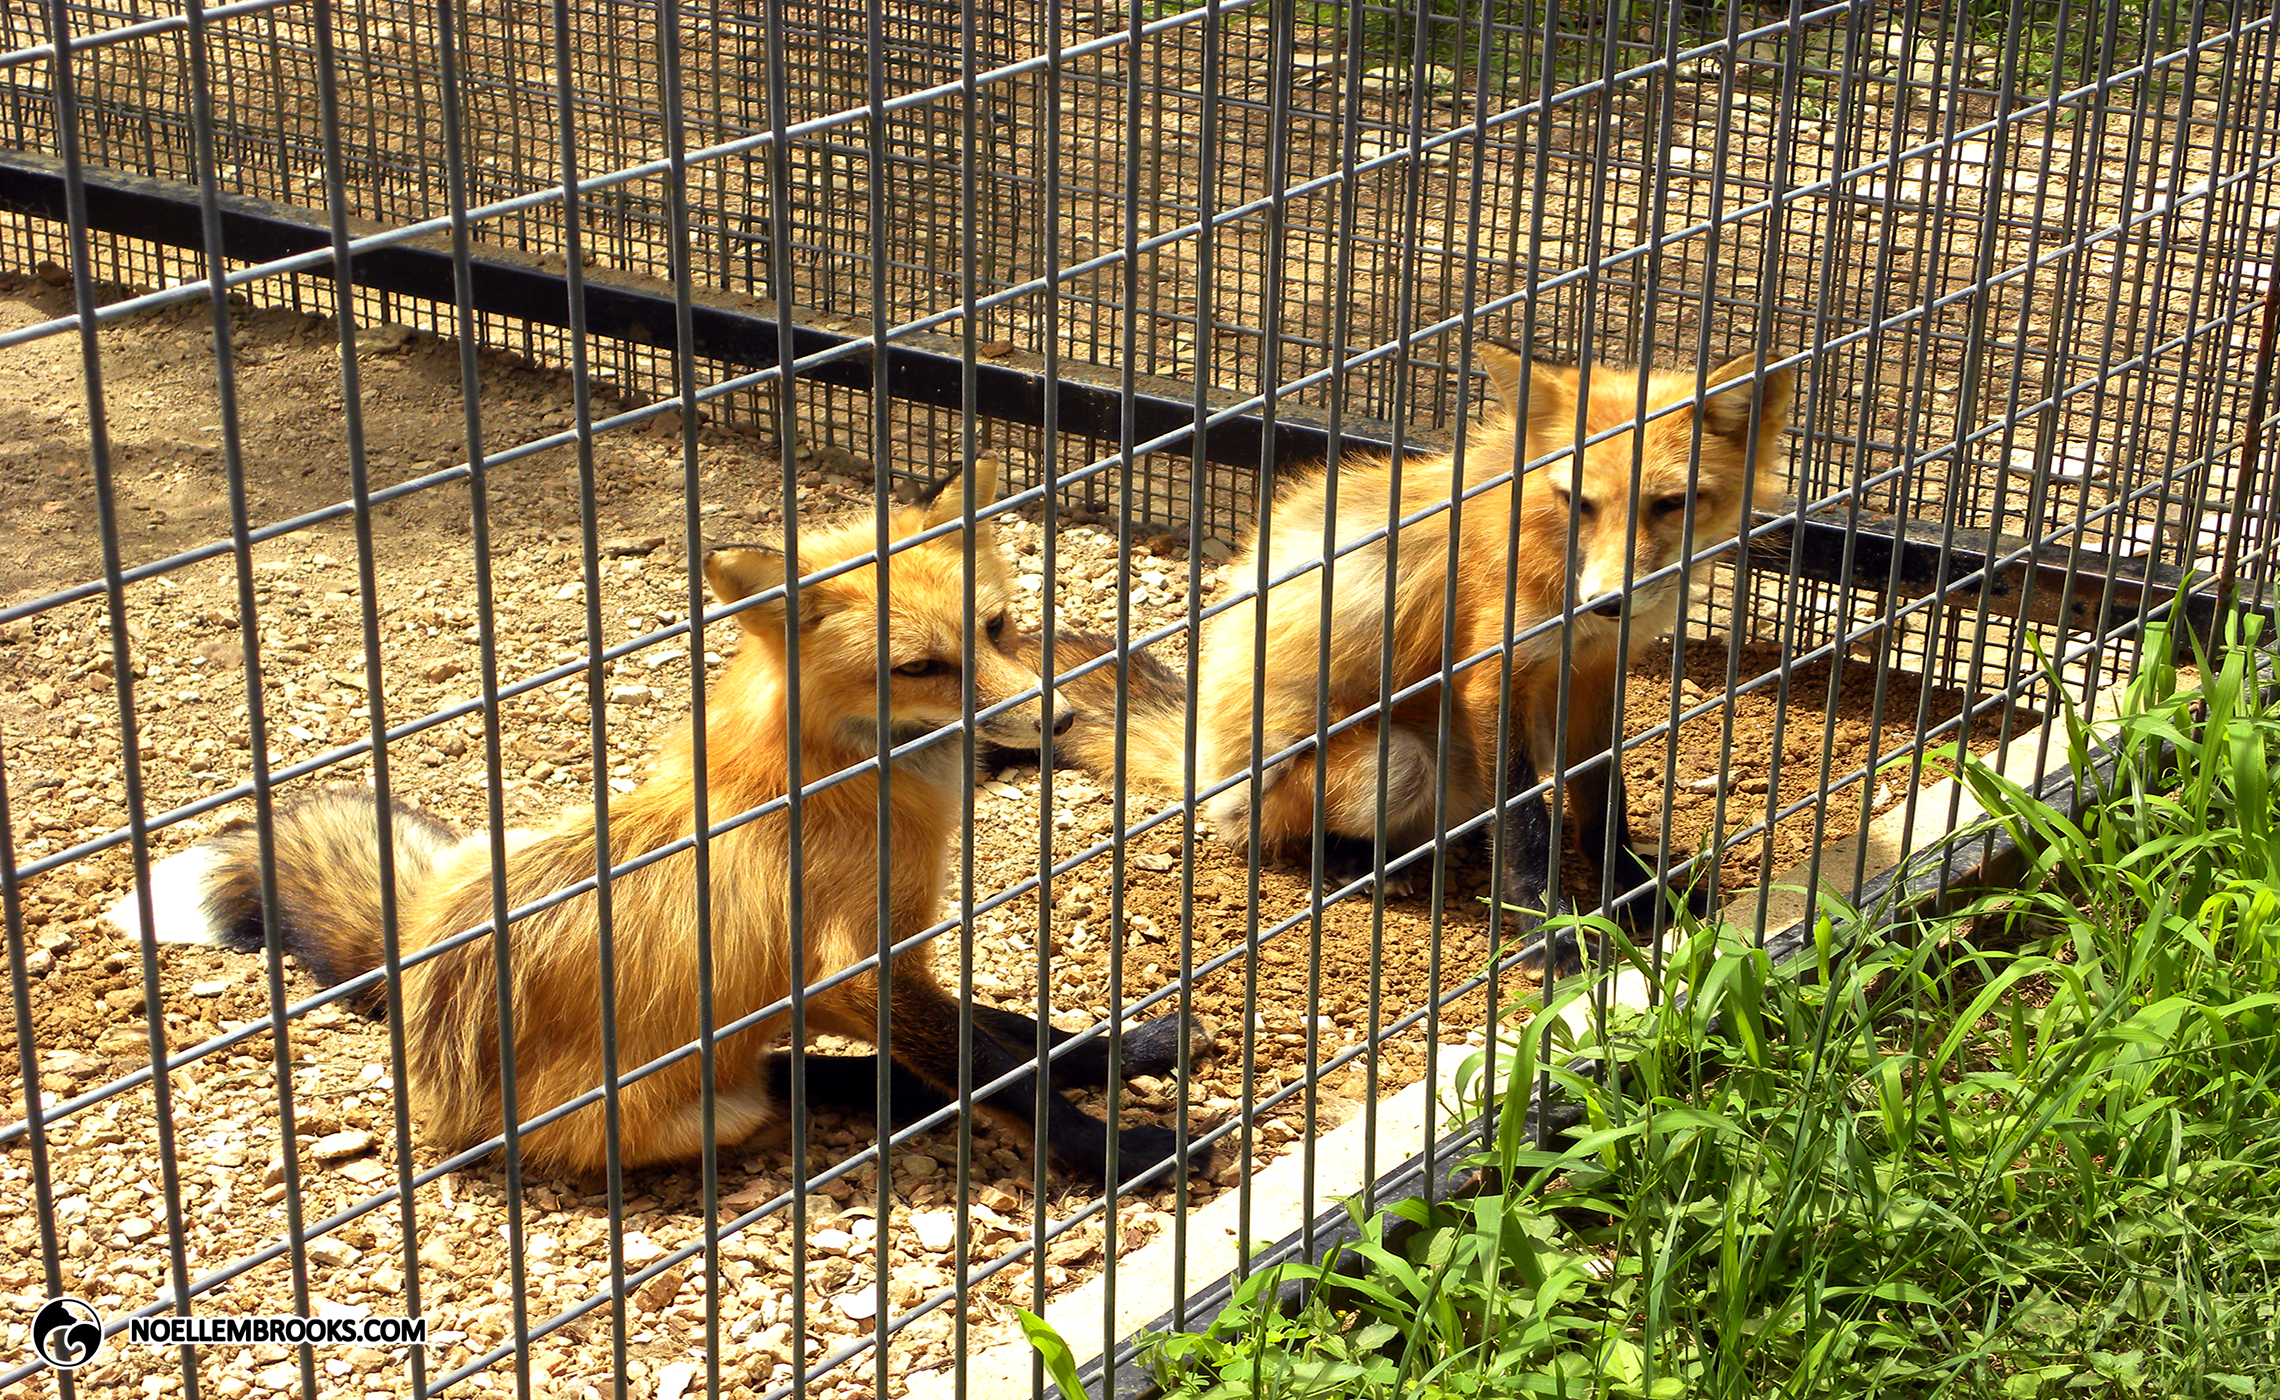 Mikhail and Nikolai the Red-Colored, Domesticated Red Foxes